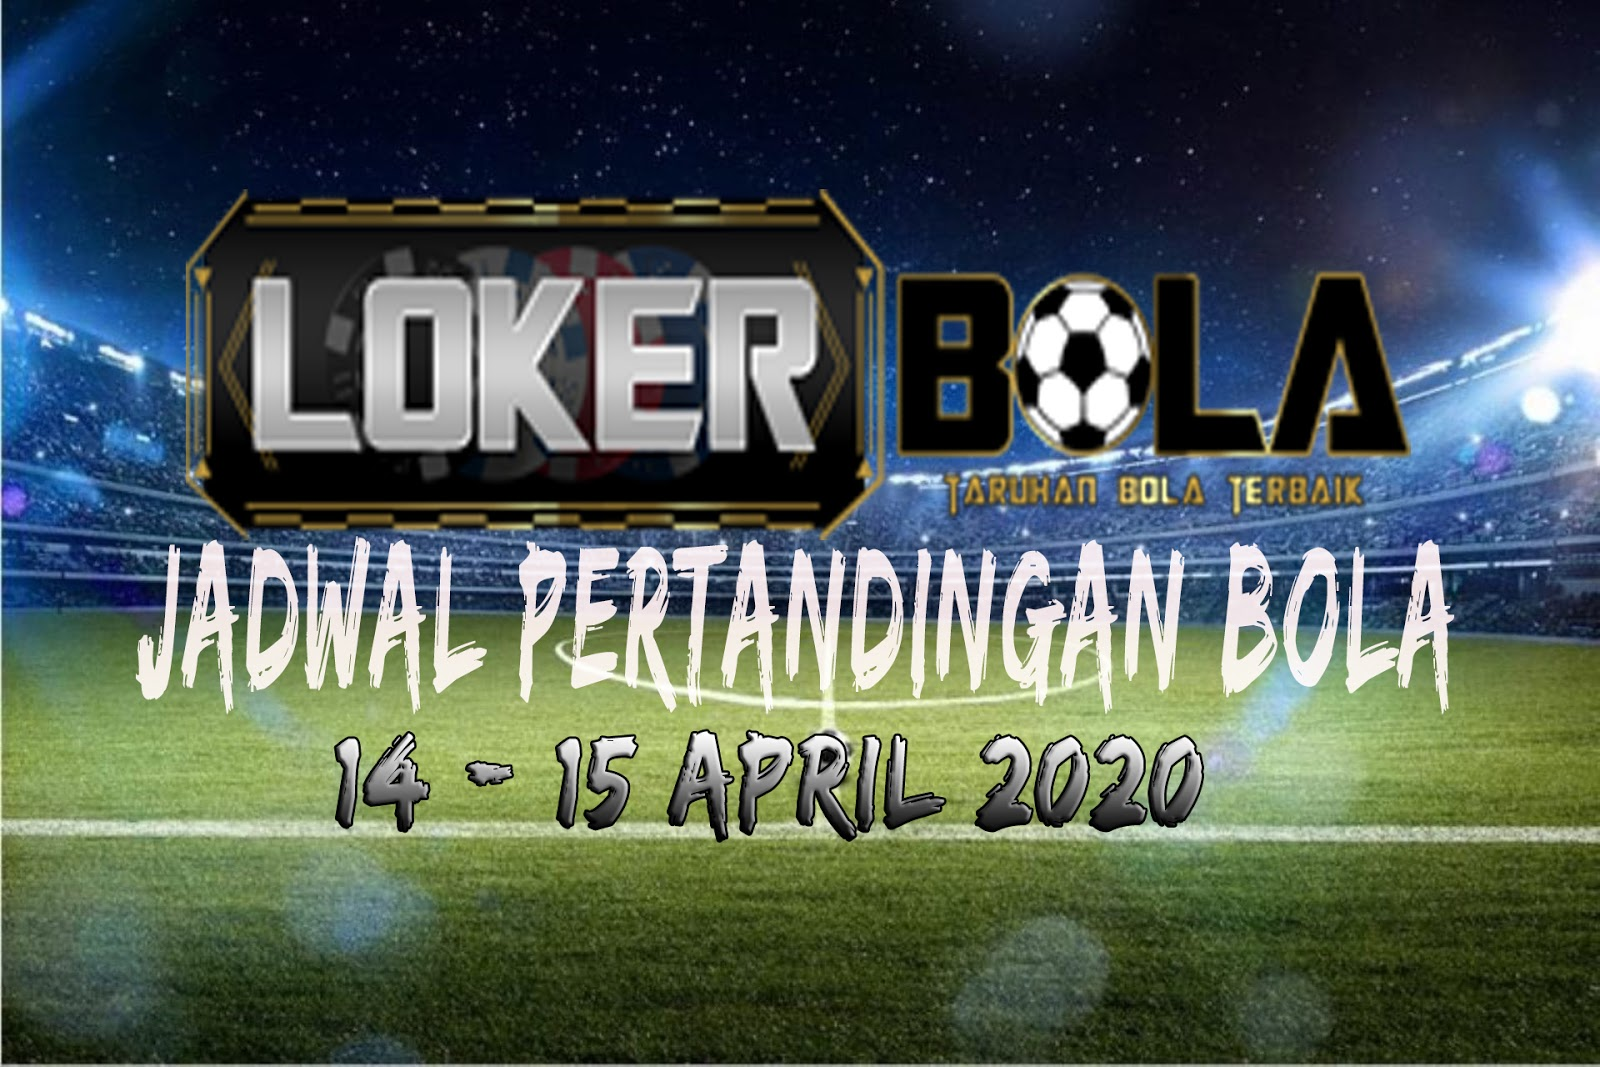 JADWAL PERTANDINGAN BOLA 14 – 15 APRIL 2020